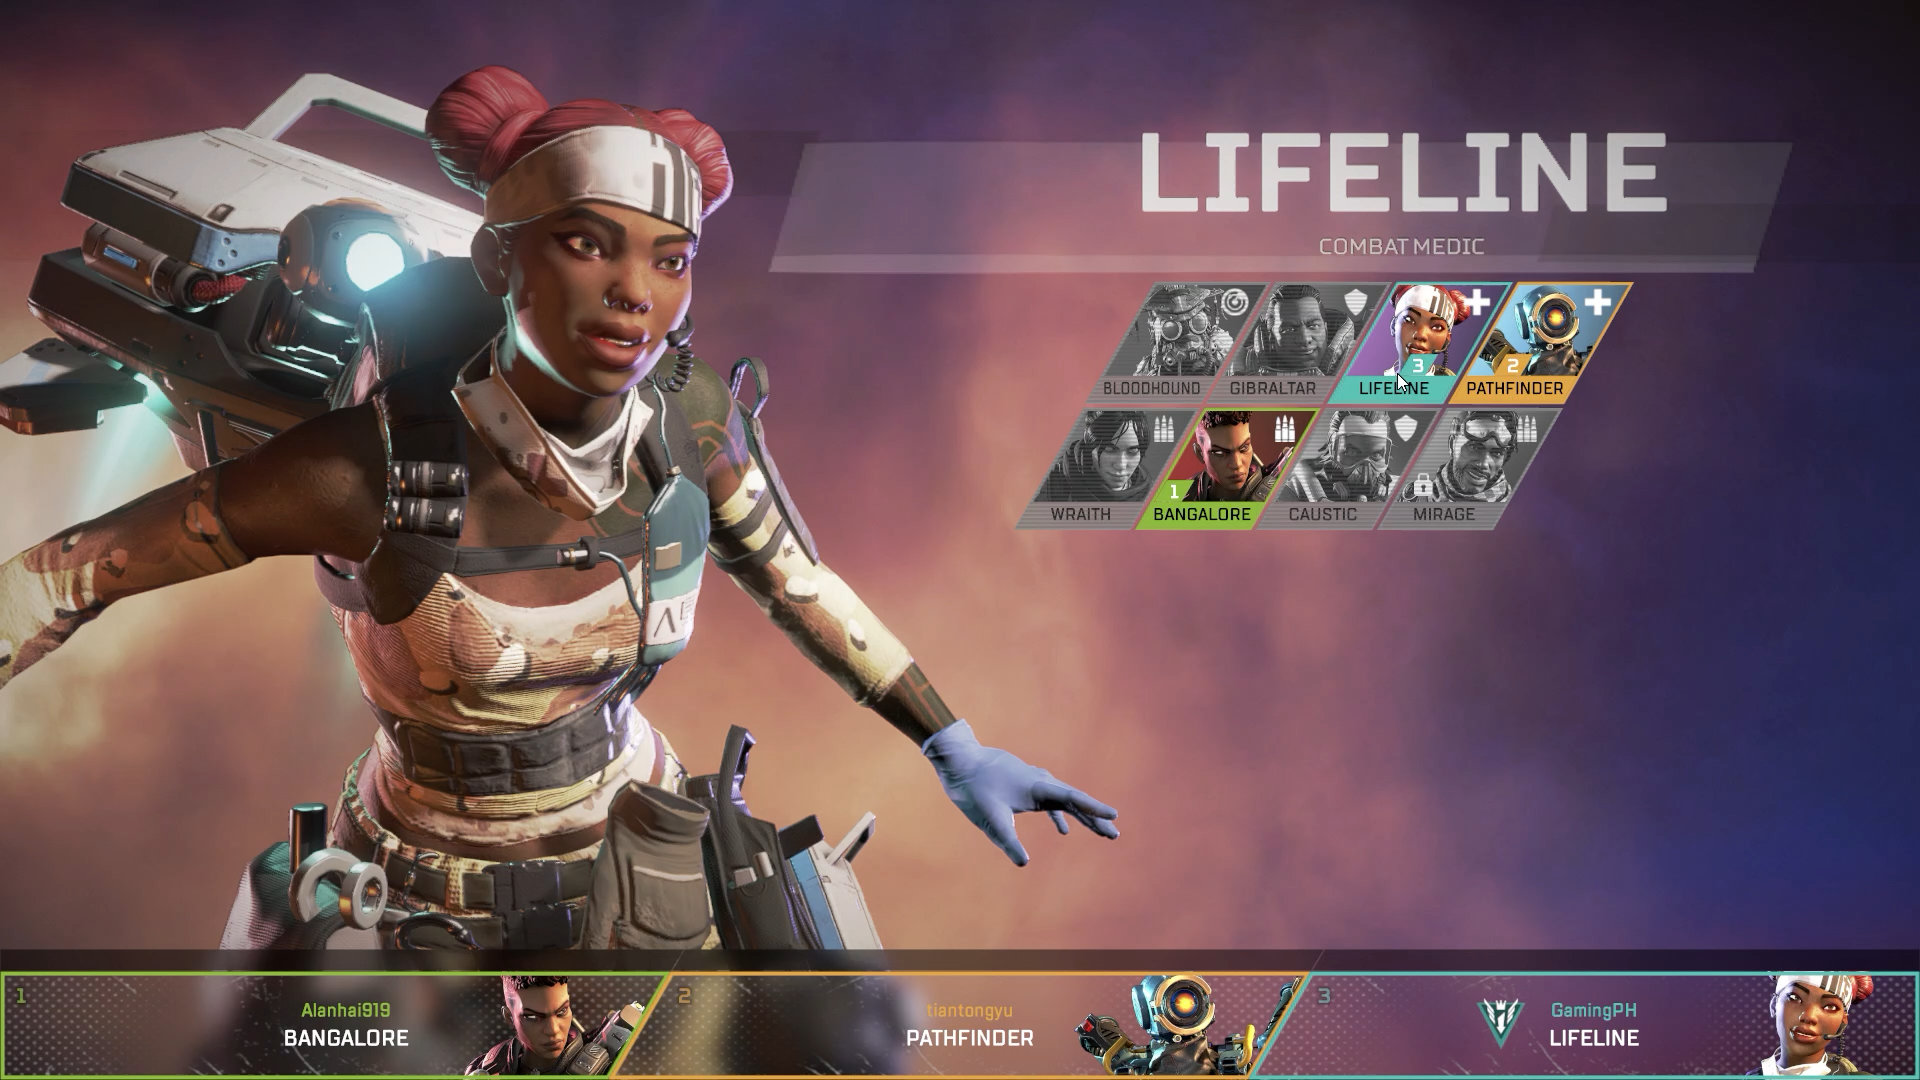 qQun chat in Apex Legends are from Bots, Selling Cheats – GamingPH com